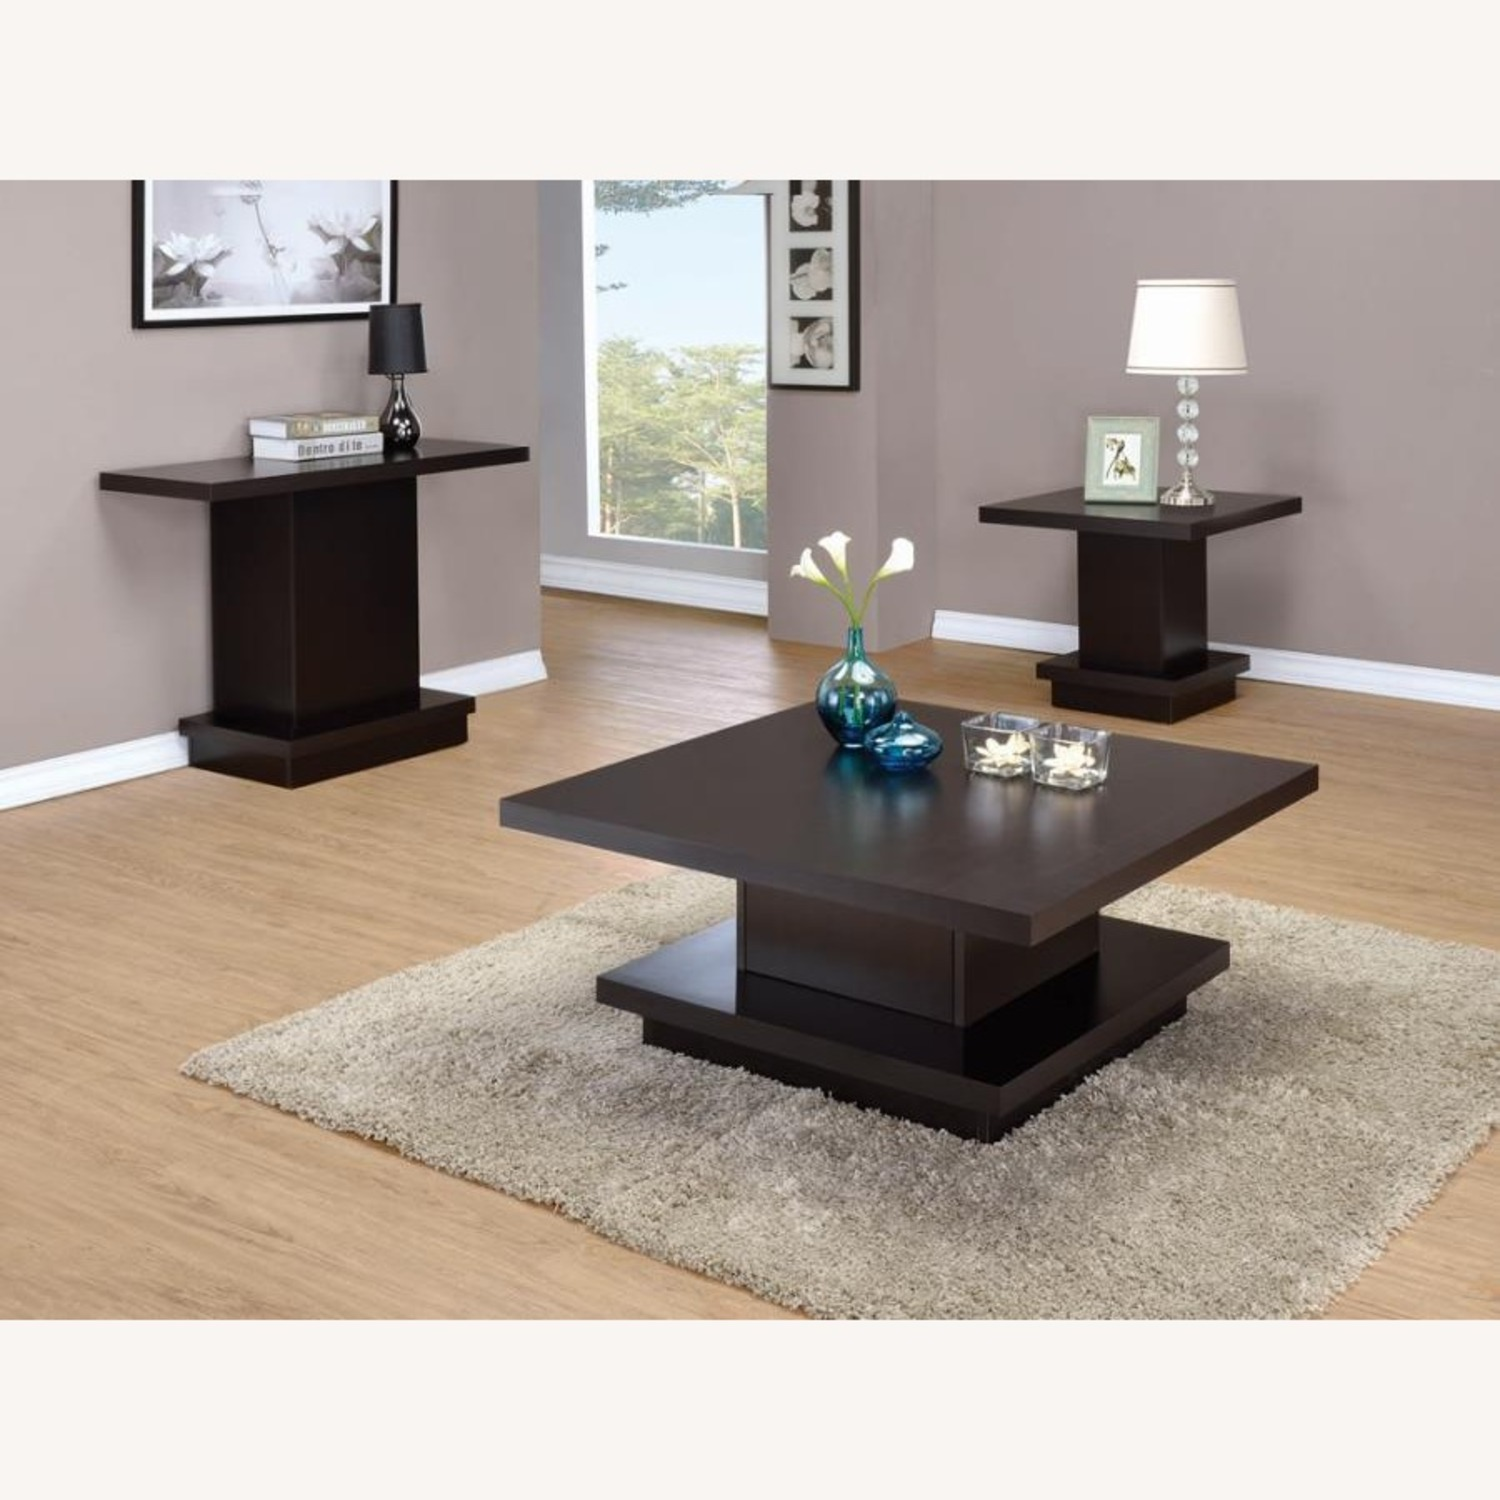 End Table In Warm Cappuccino Finish - image-3